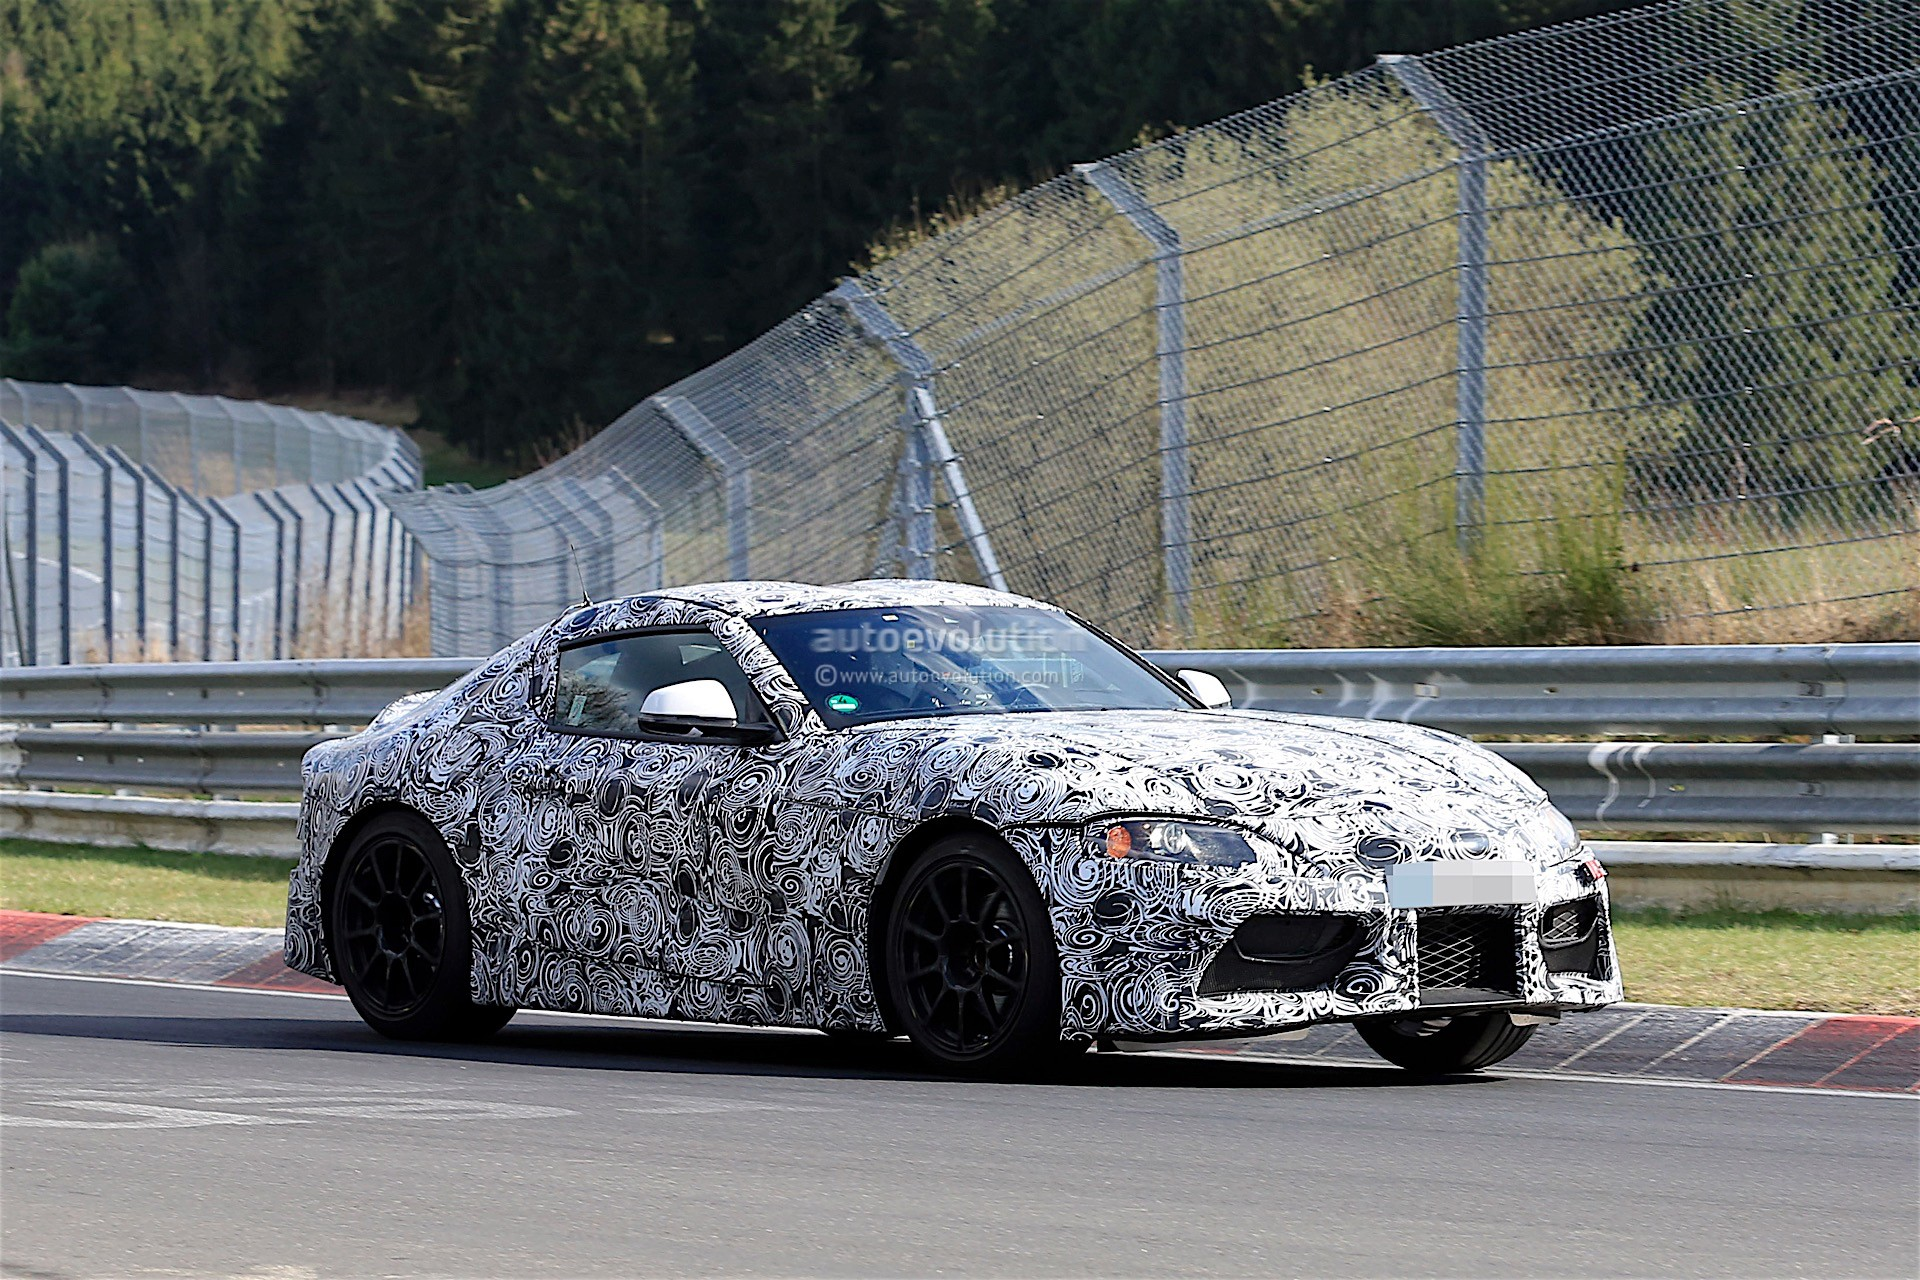 2018 Toyota Supra J29 Getting Zf 8hp Automatic B48 And B58 Bmw Turbo Engines Autoevolution